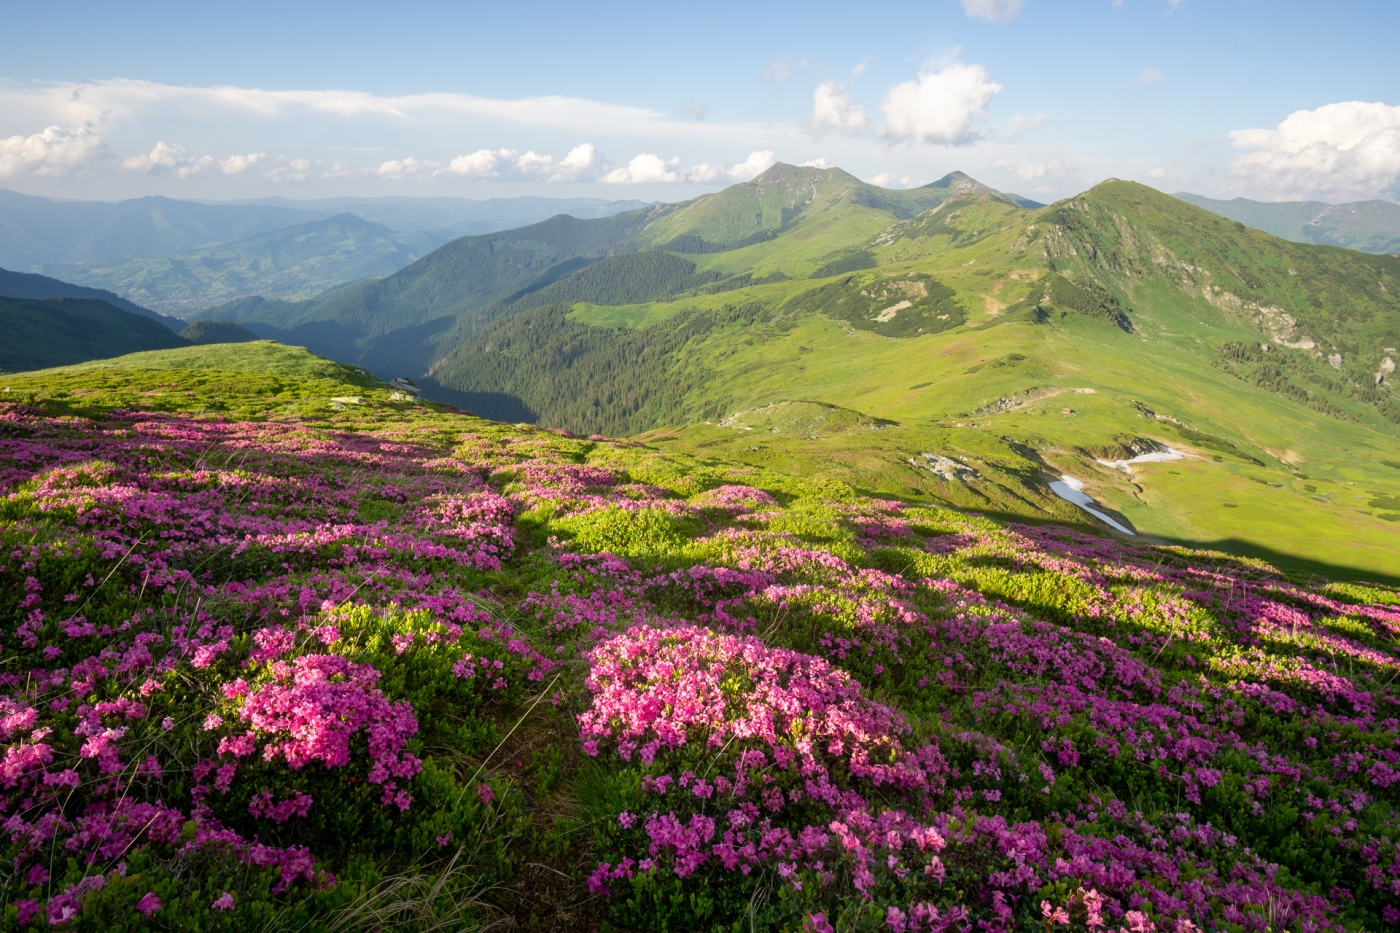 Blooming Rodnei mountains